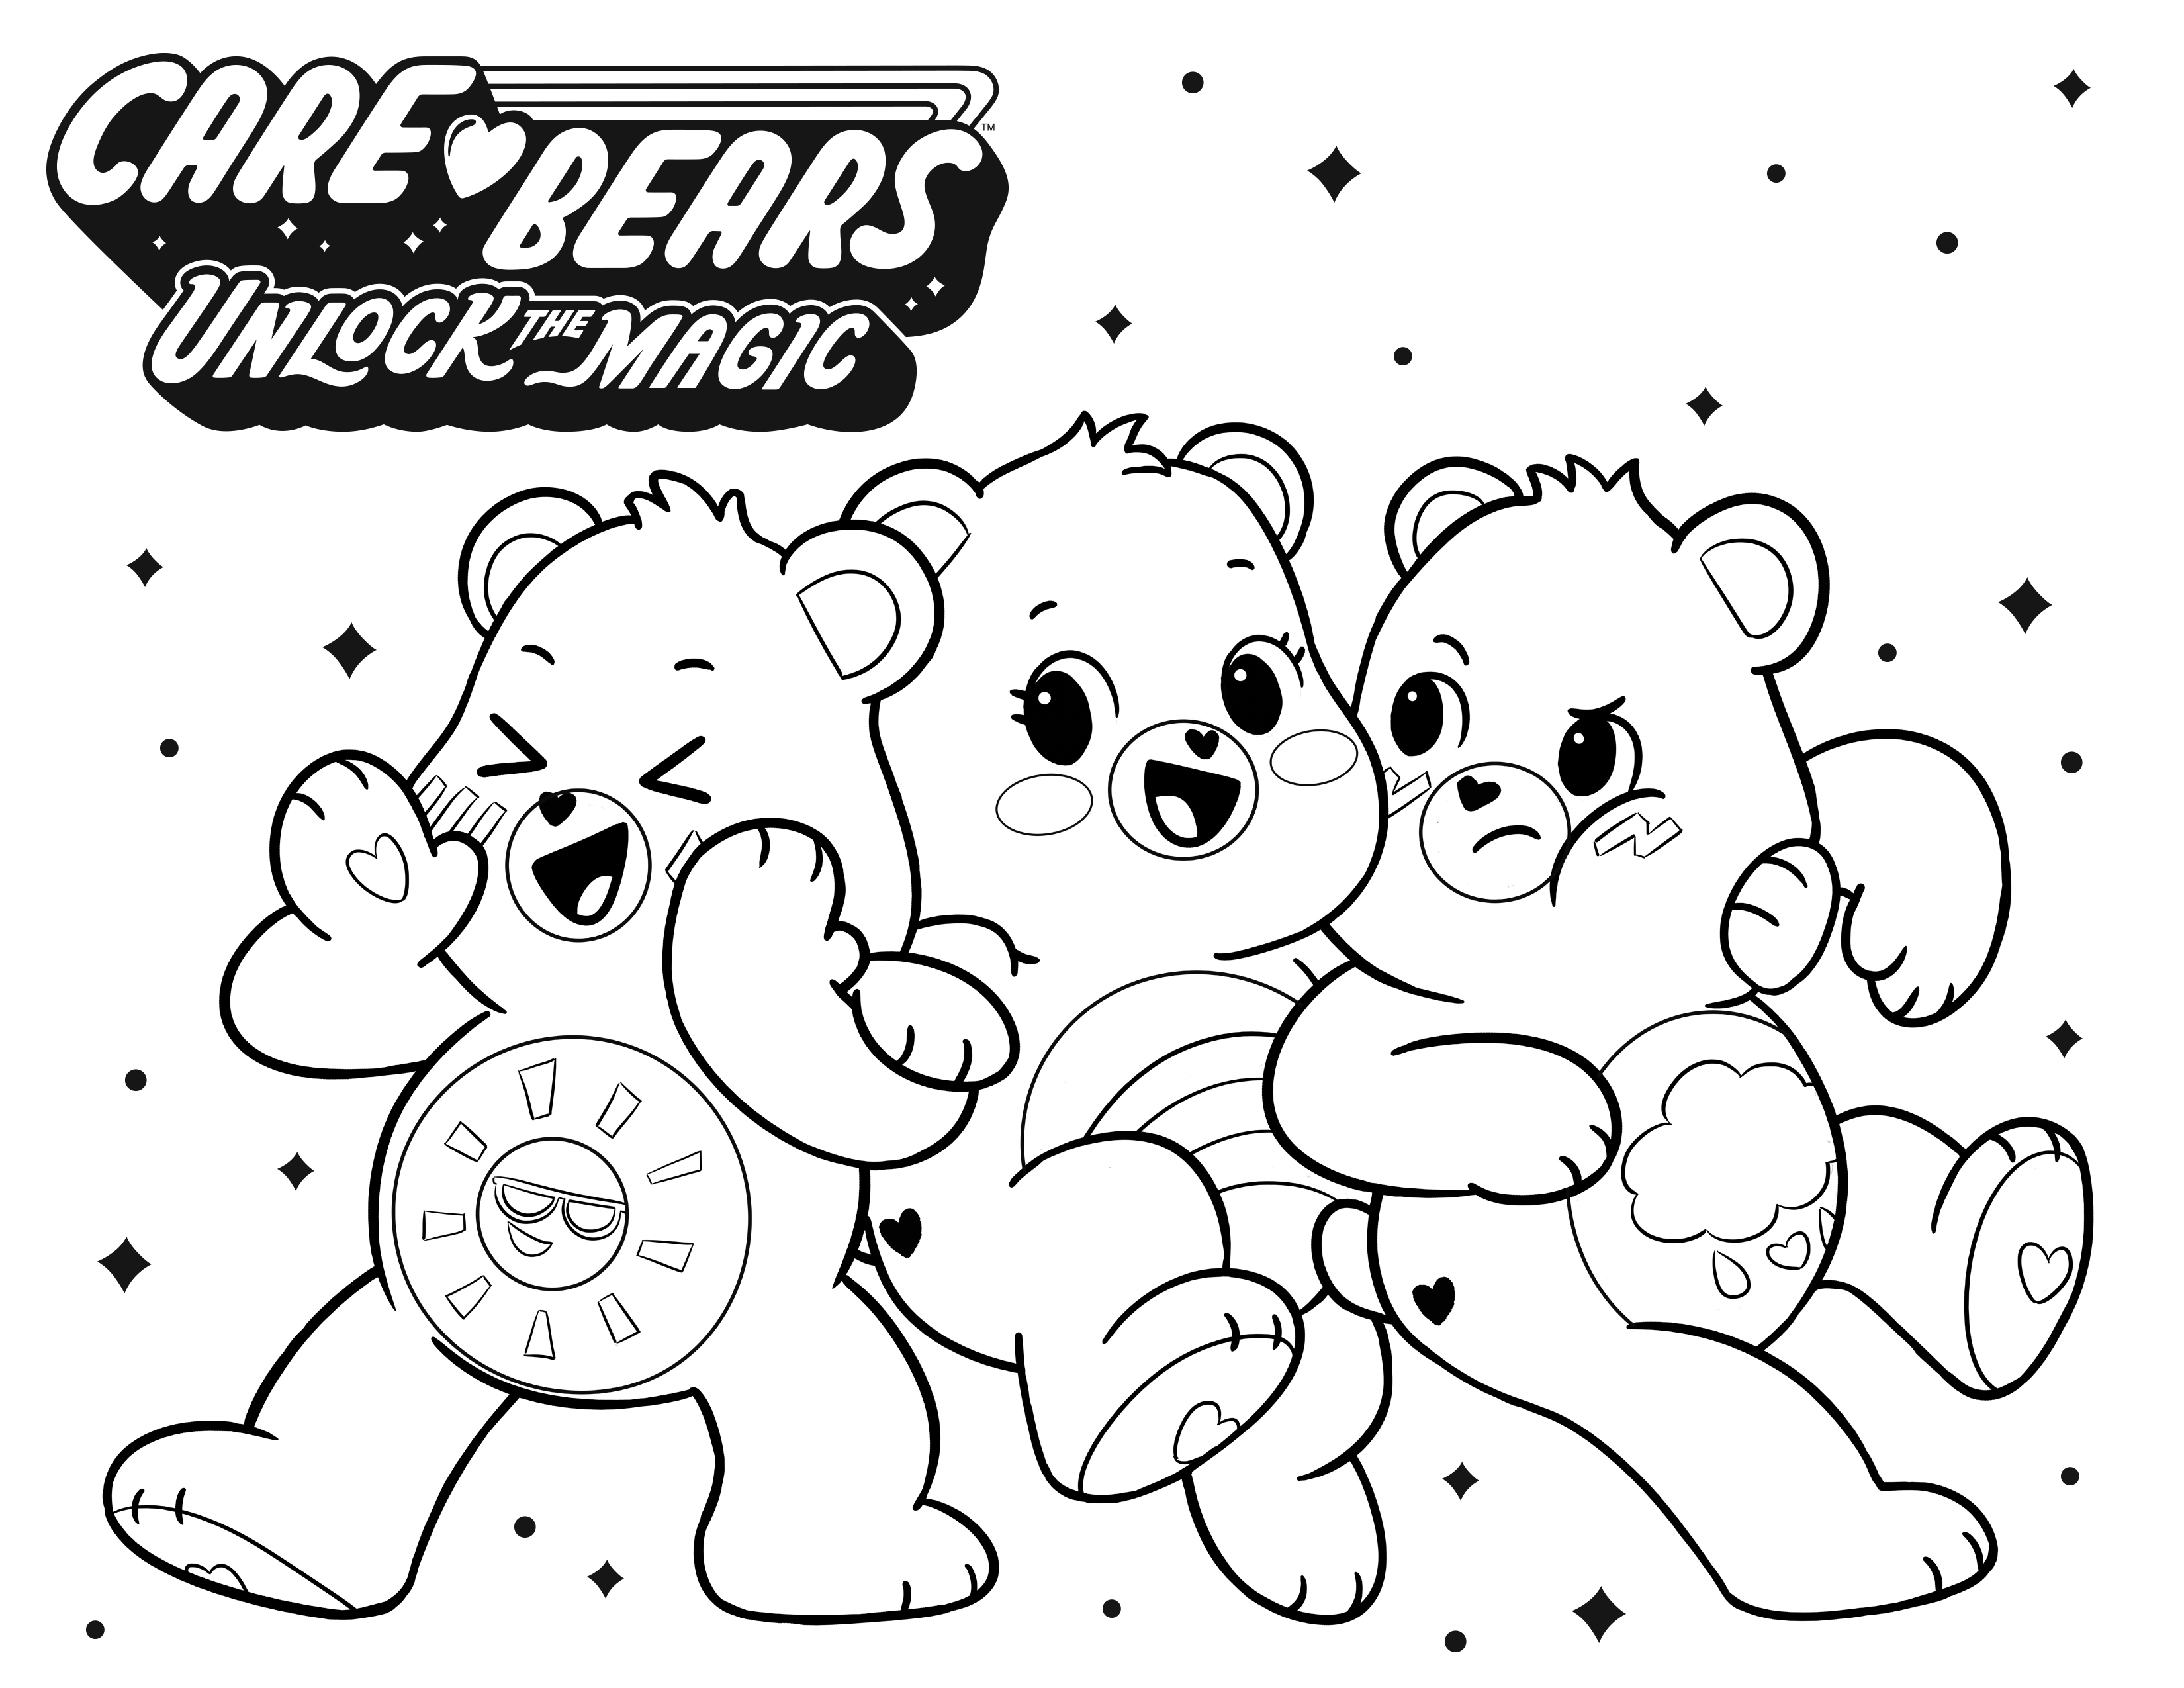 Coloring Pages For Adults Flowers Halloween Kids Care Bears Page Games  Activities Gorgeous Happ Pdf Printable Unicorn Disney Easy Bear To Print  Good Luck Book And Free Winsome T Online Engaging Cars | 2550x3300